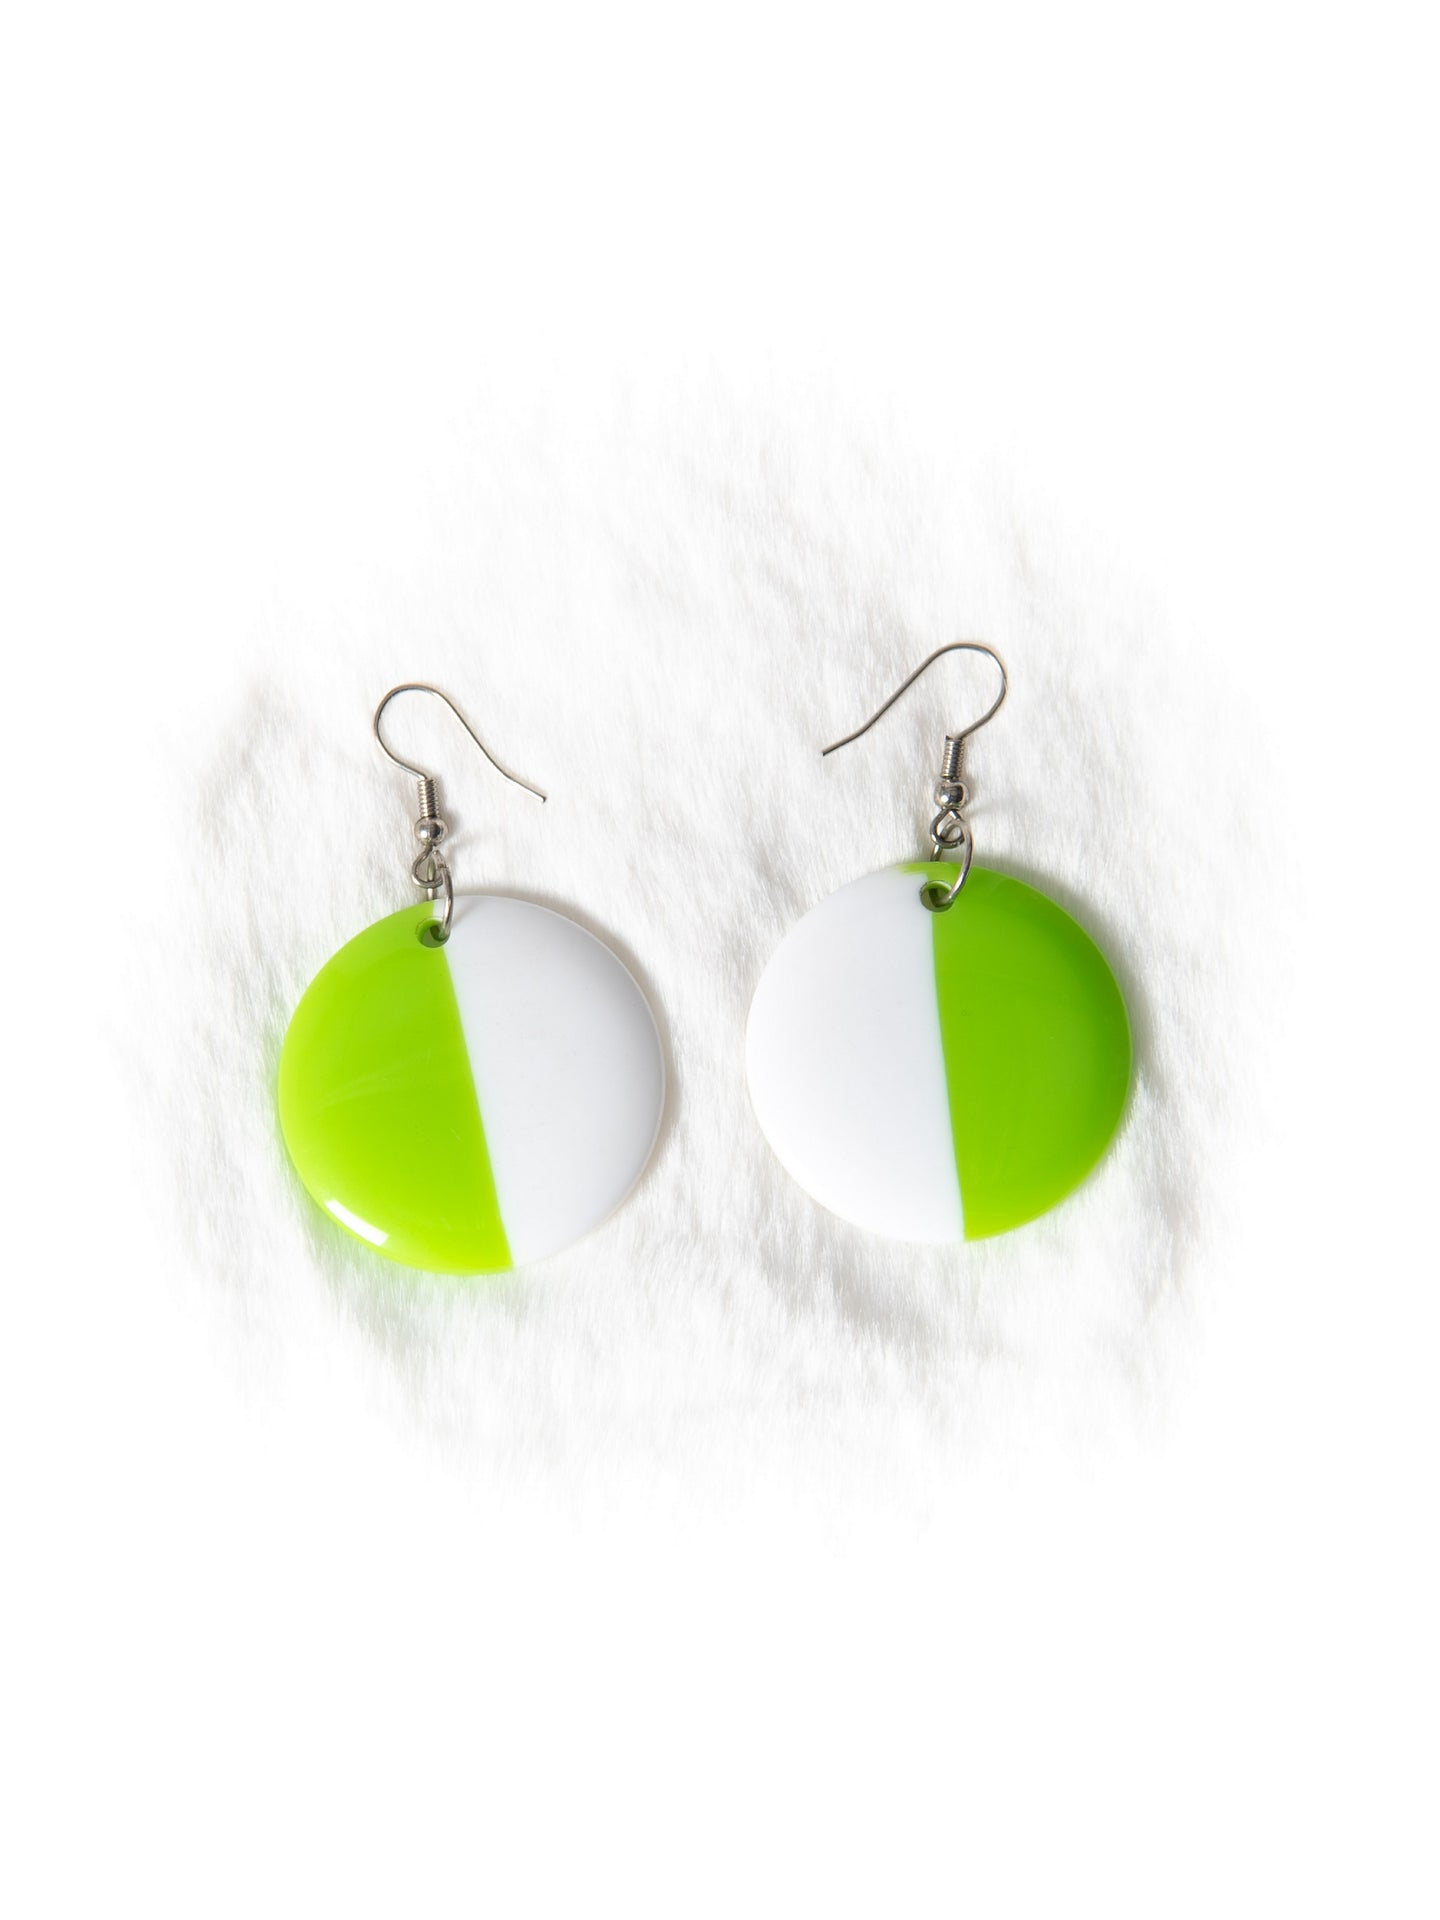 Green and White Circle Earrings